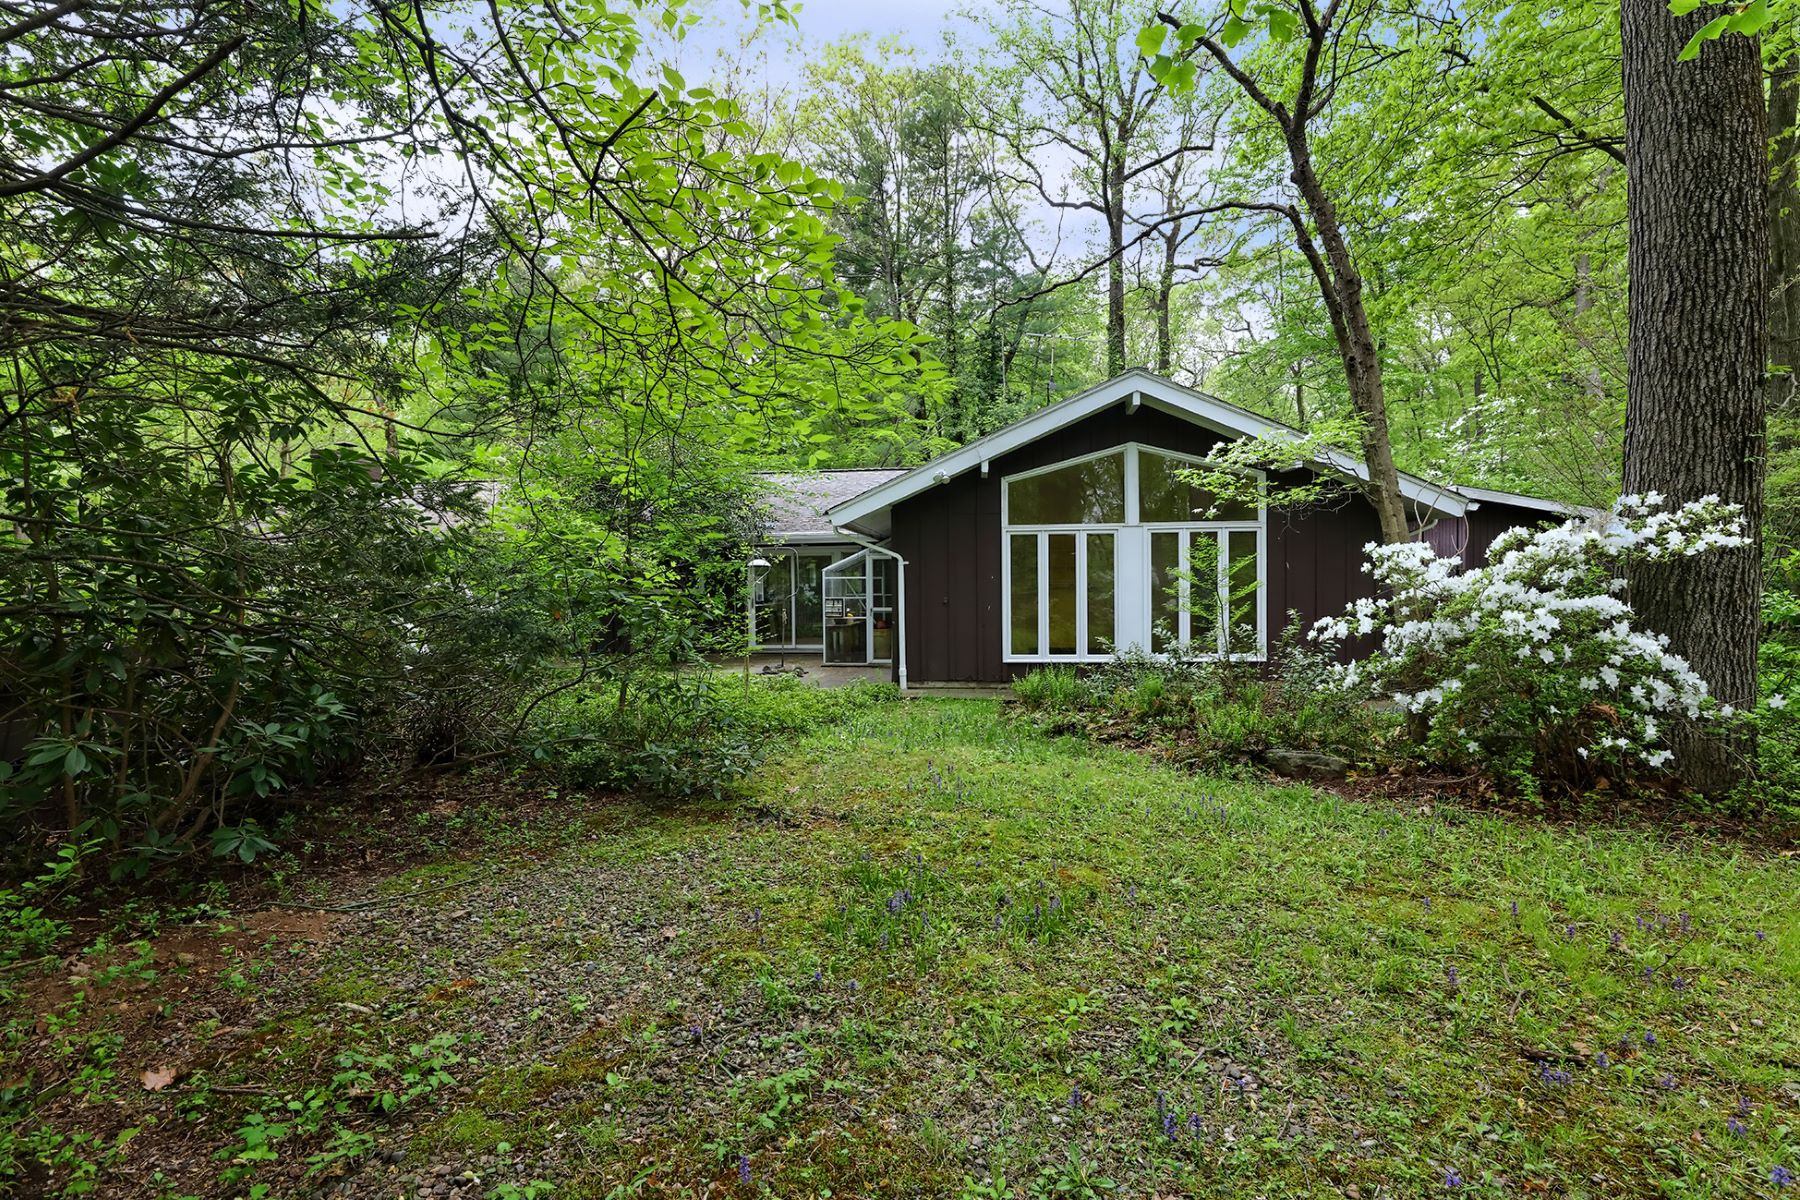 Single Family Home for Sale at Clean, Modern Lines Inspire a World of Possibility 8 Autumn Hill Road, Princeton, New Jersey 08540 United StatesMunicipality: Princeton